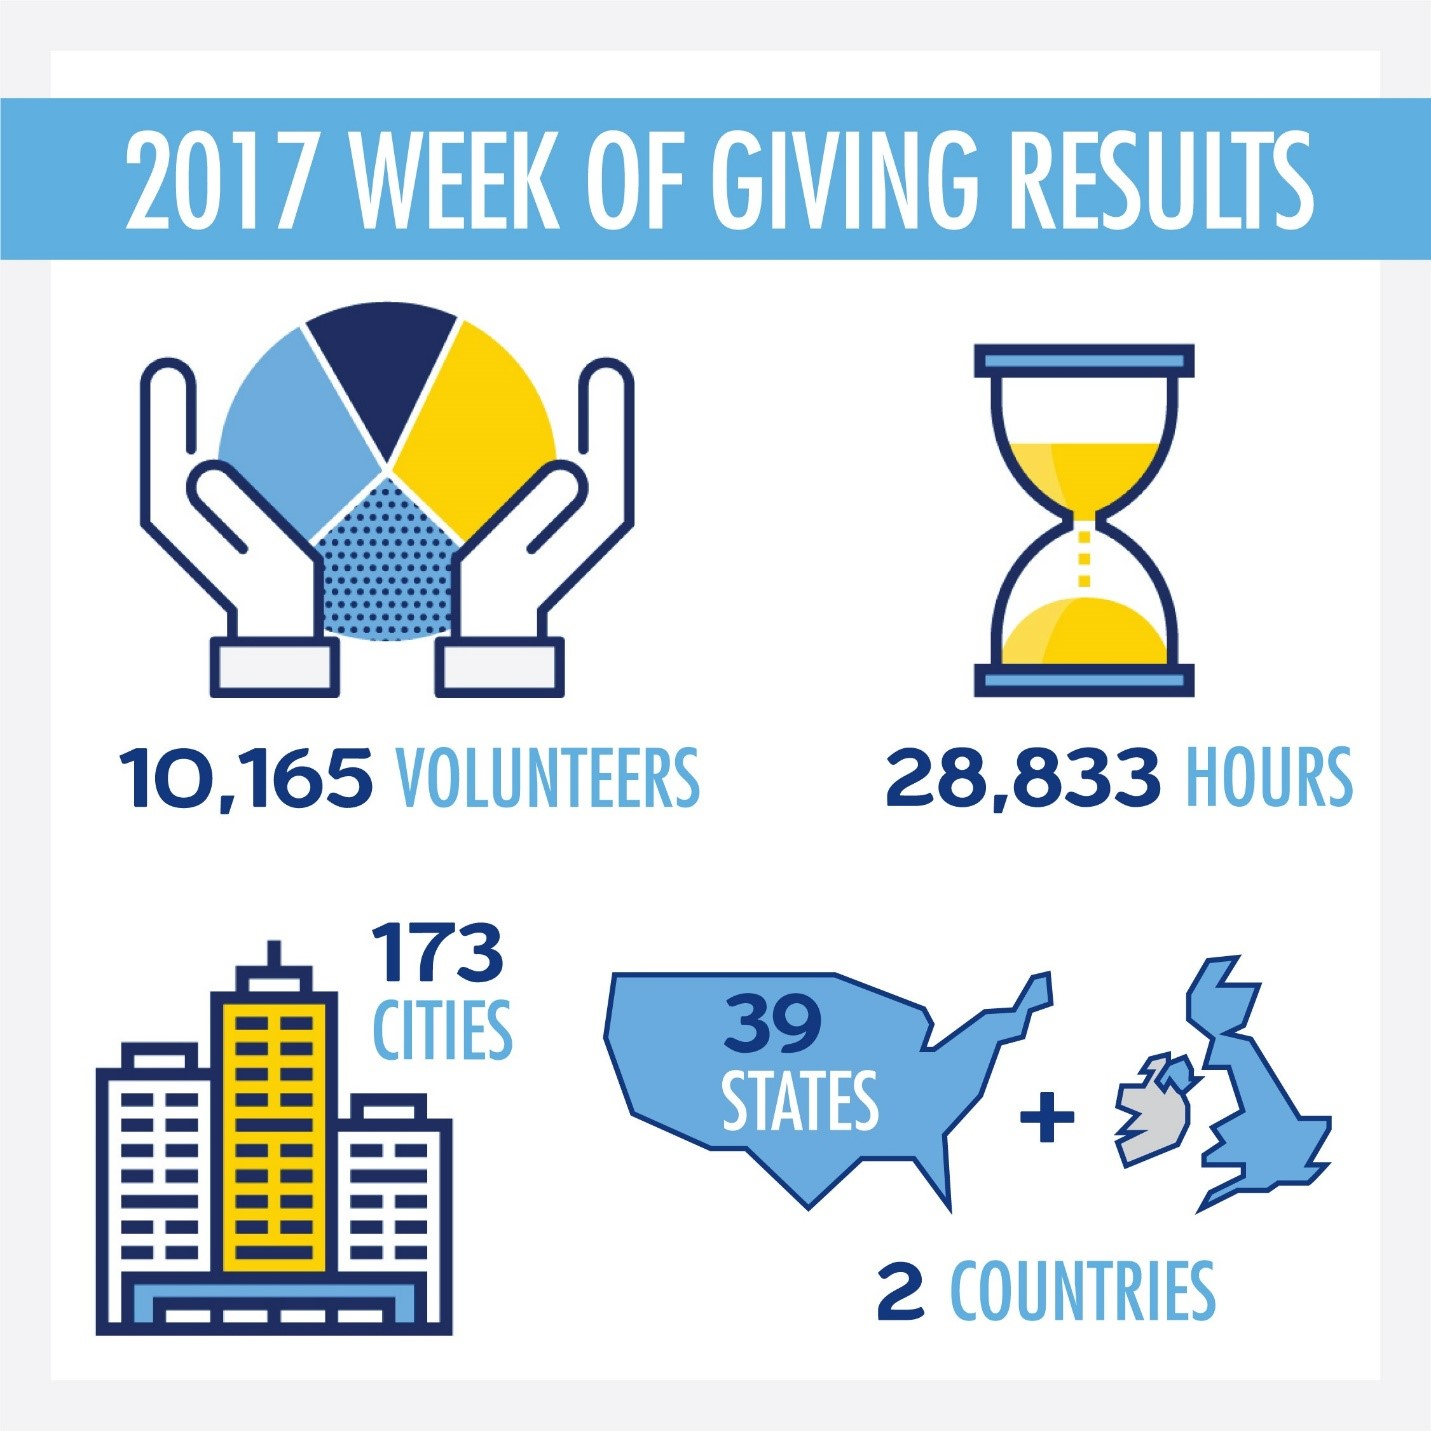 2017 Week of Giving infographic